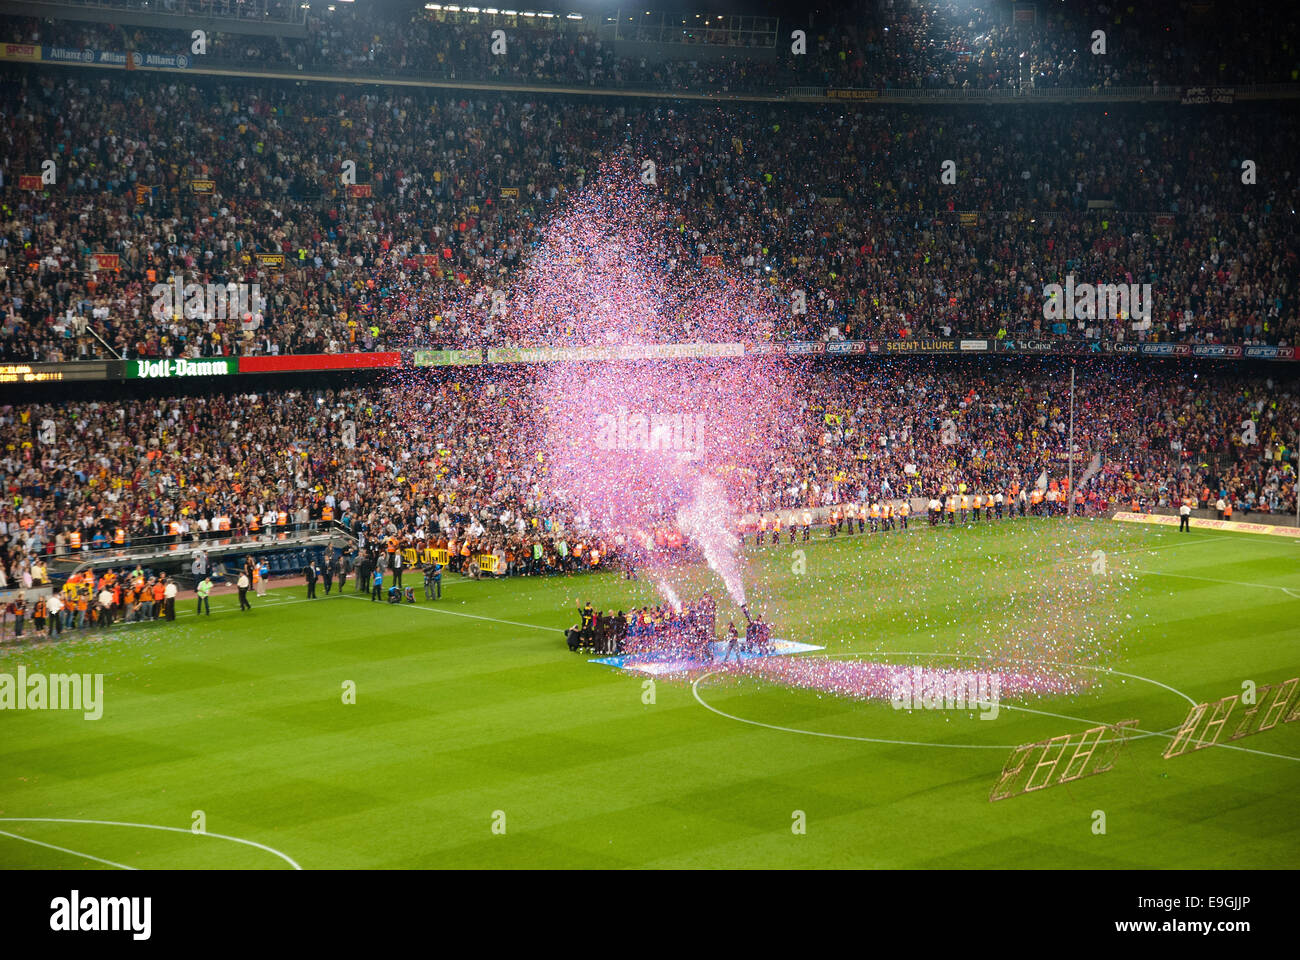 BARCELONA - MAY 23: Camp Nou Stadium after the match against Osasuna on May 23, 2009 in Barcelona, Spain. - Stock Image